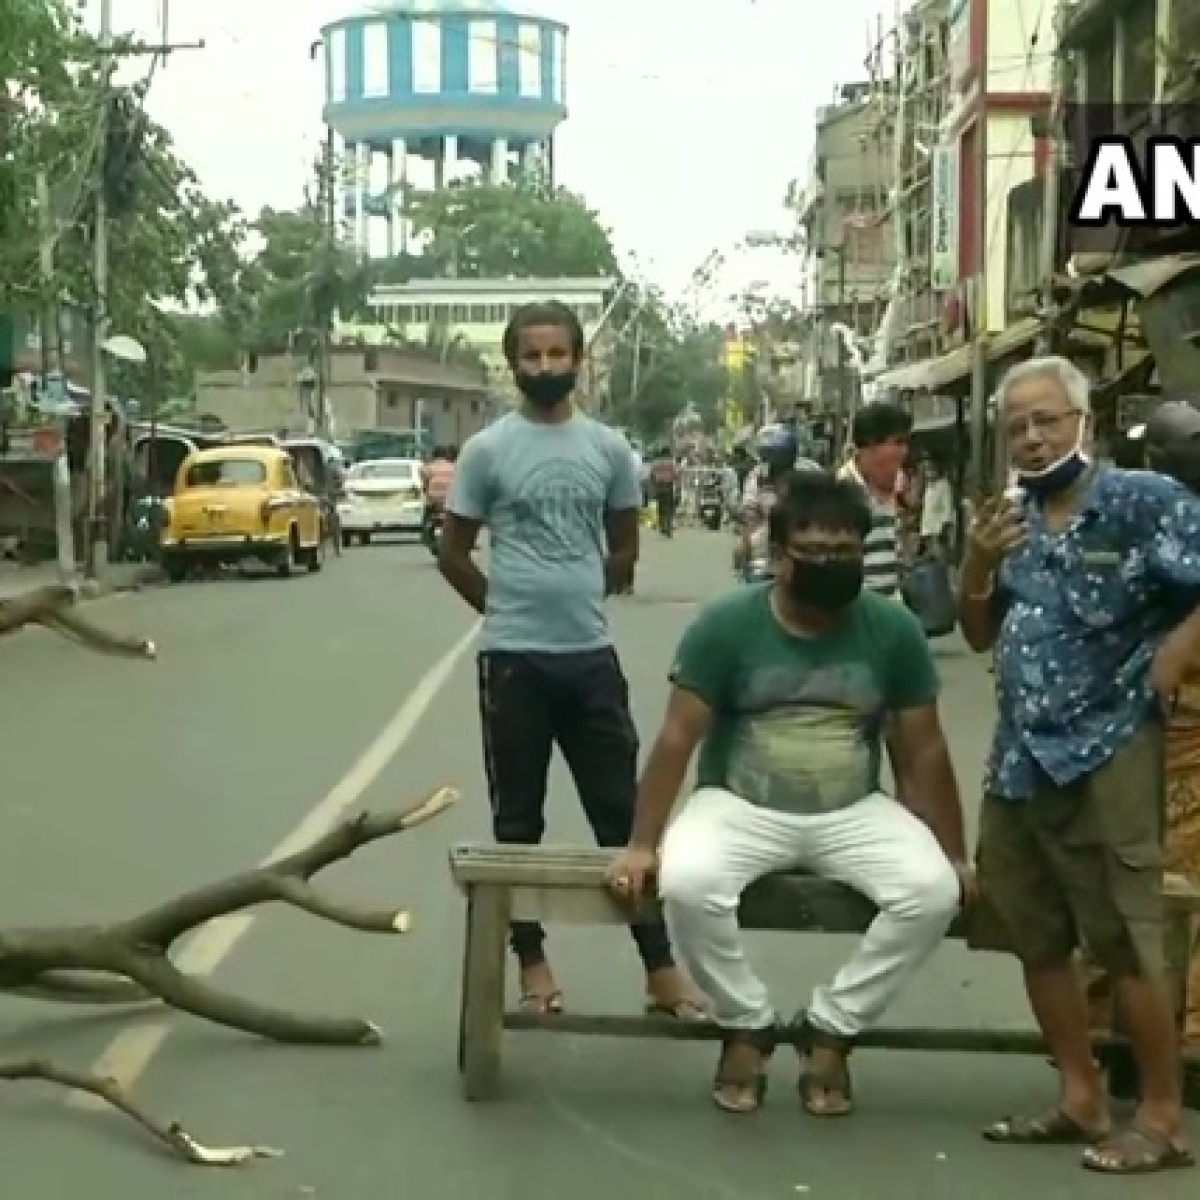 Cyclone Amphan: Local residents block roads in Kolkata, demand restoration of electricity and water supply